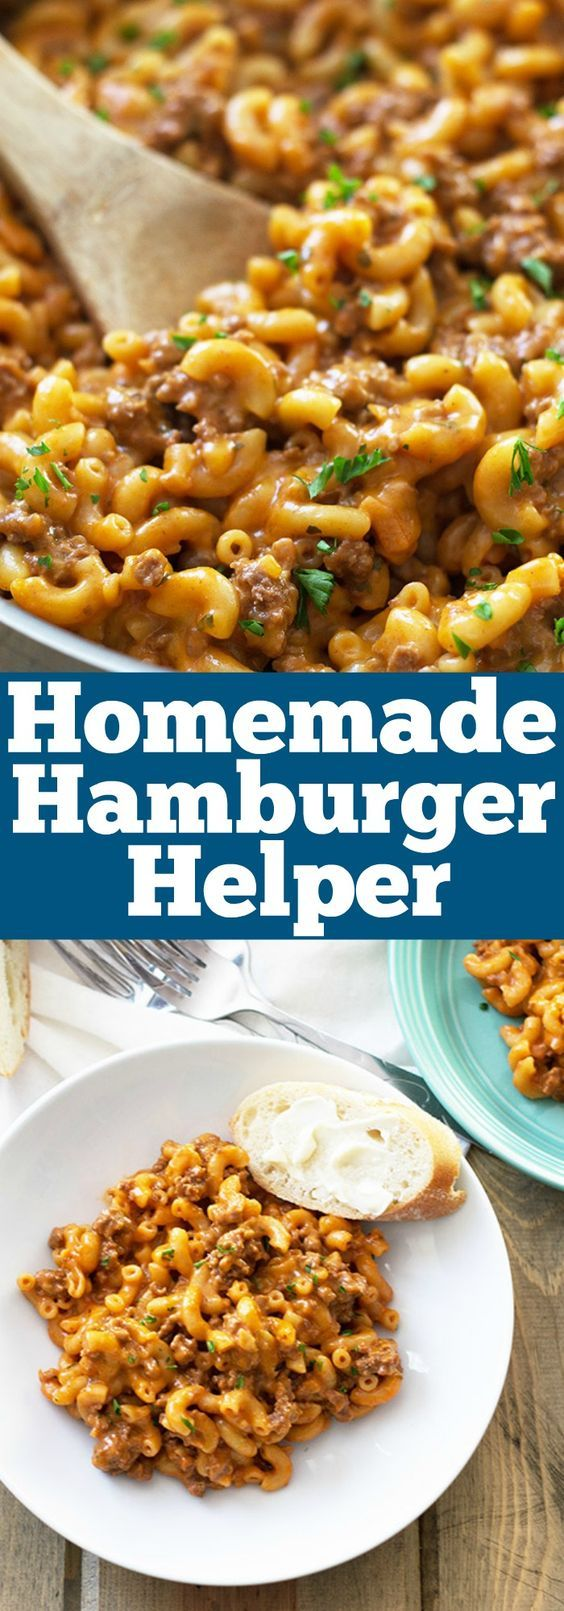 Homemade Hamburger Helper -just as quick and easy as the boxed stuff, but tastes way better!   countrysidecravings.com